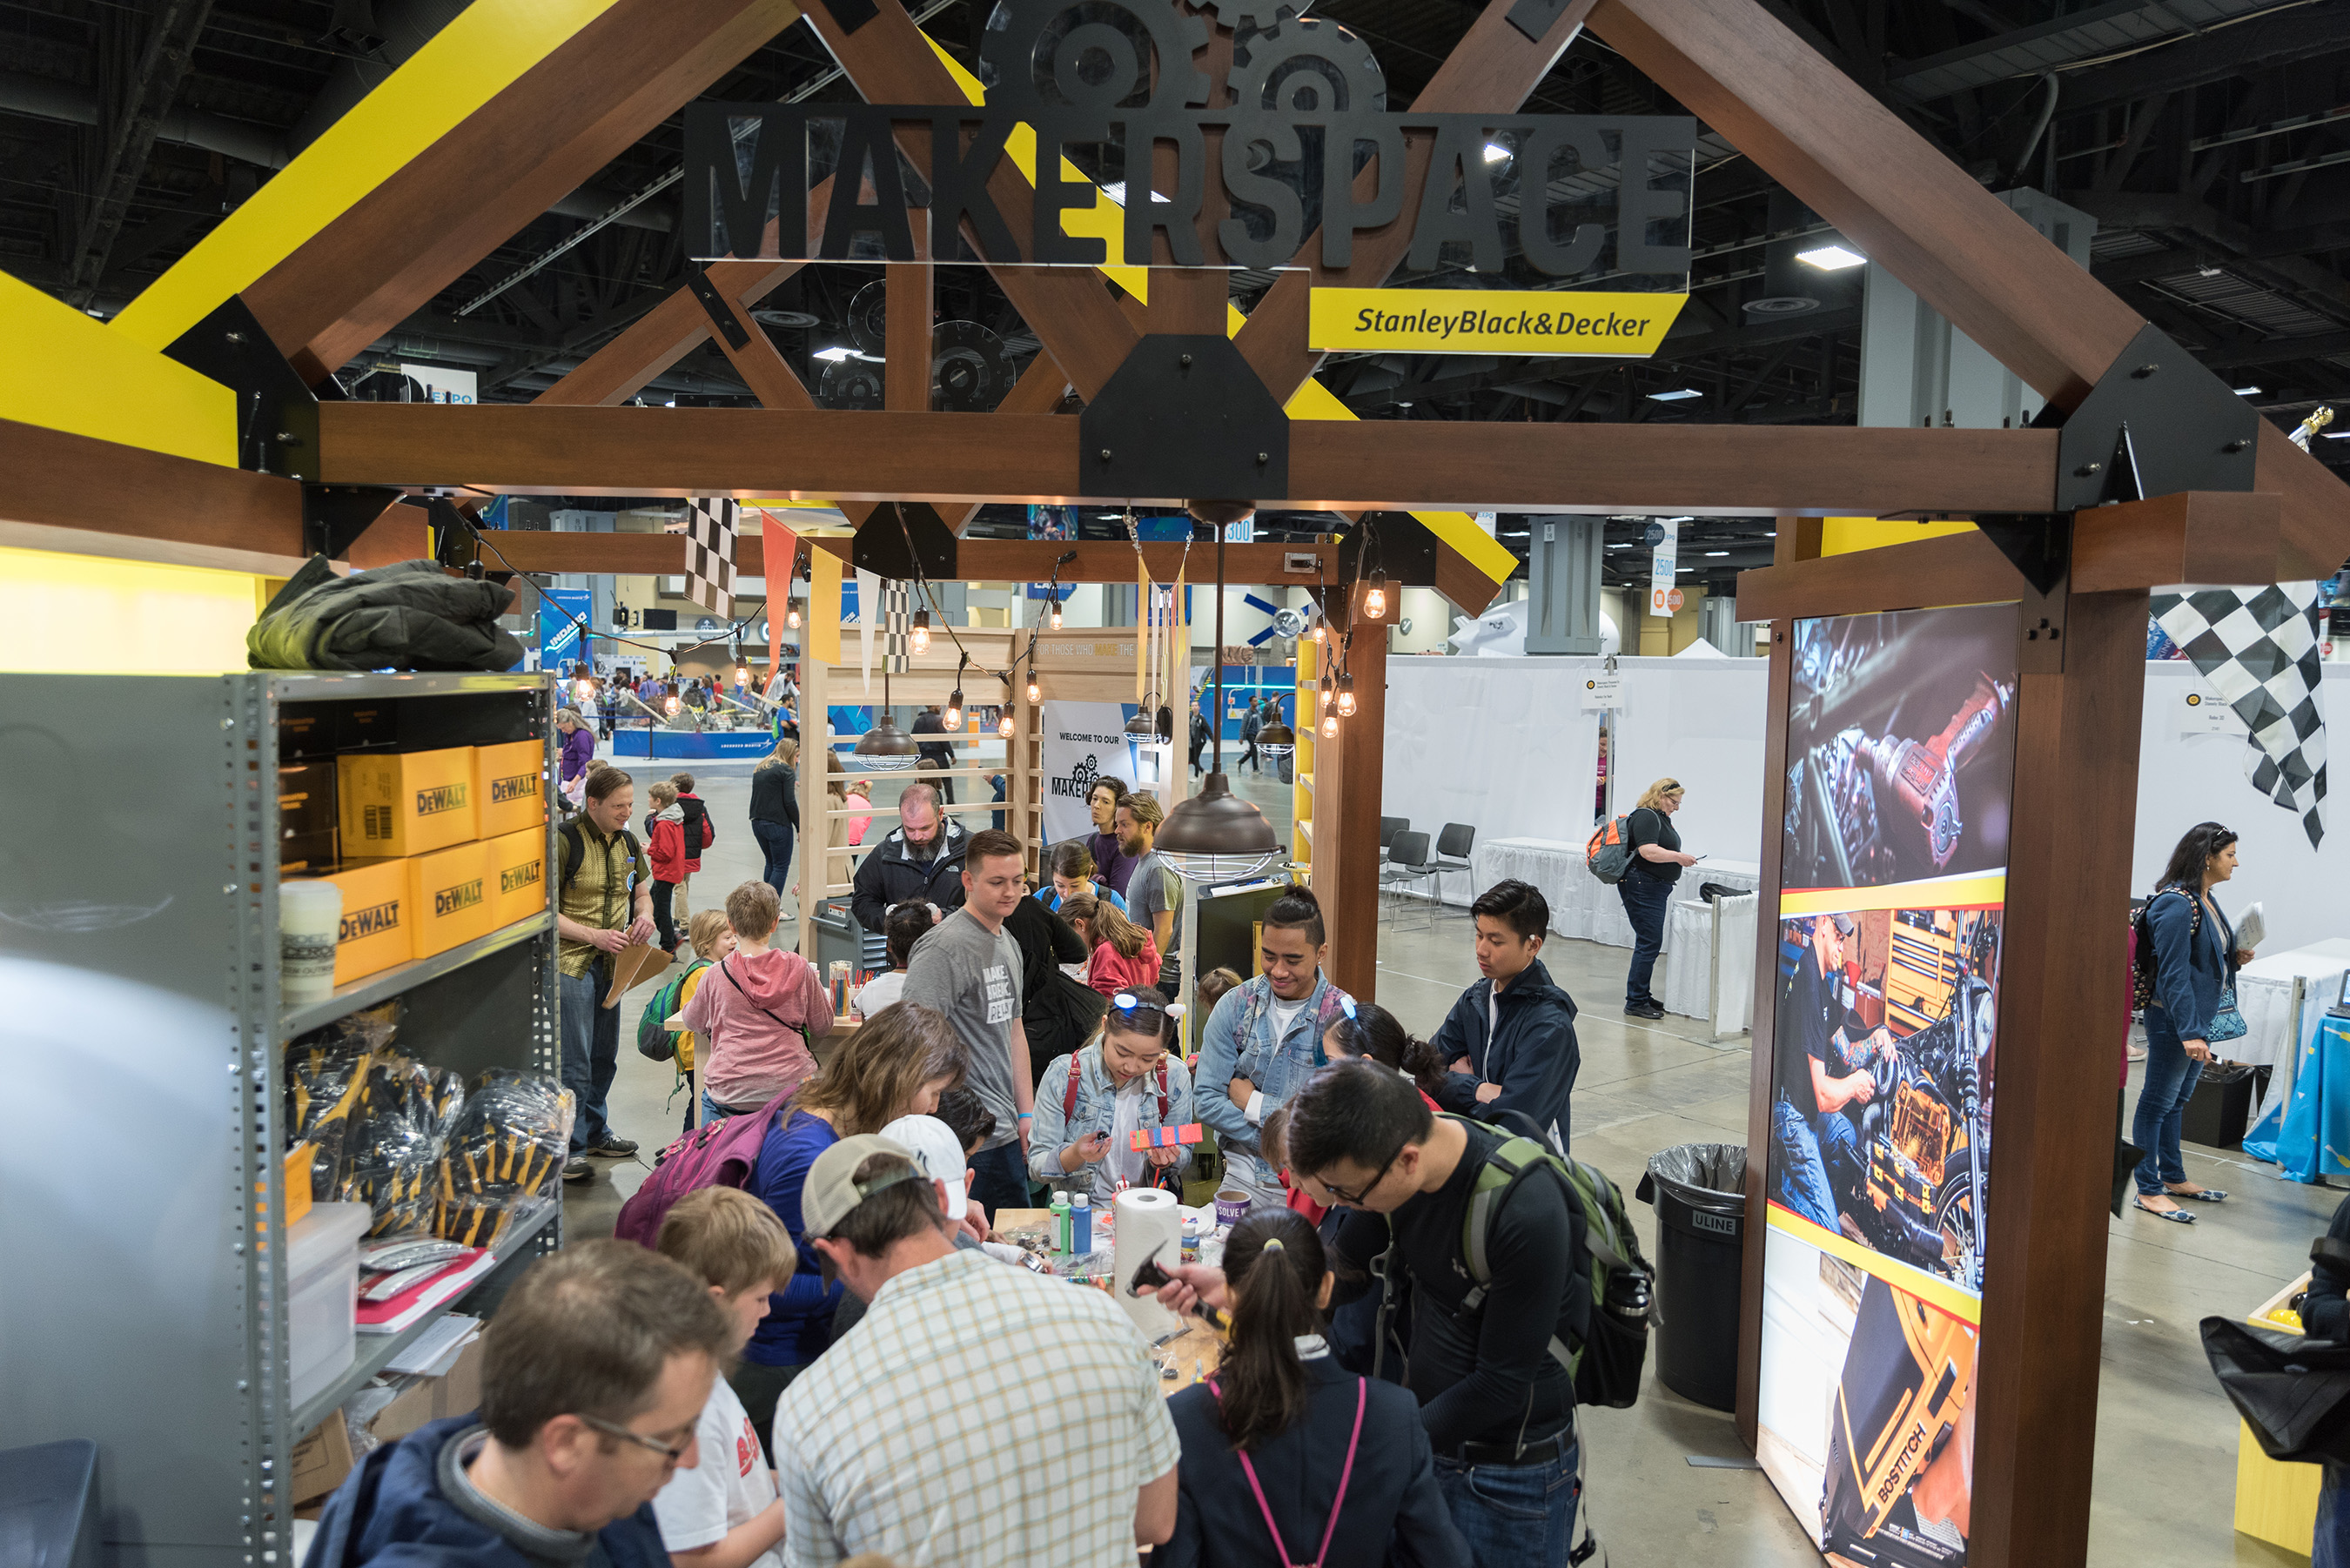 Stanley Black & Decker's traveling makerspace.